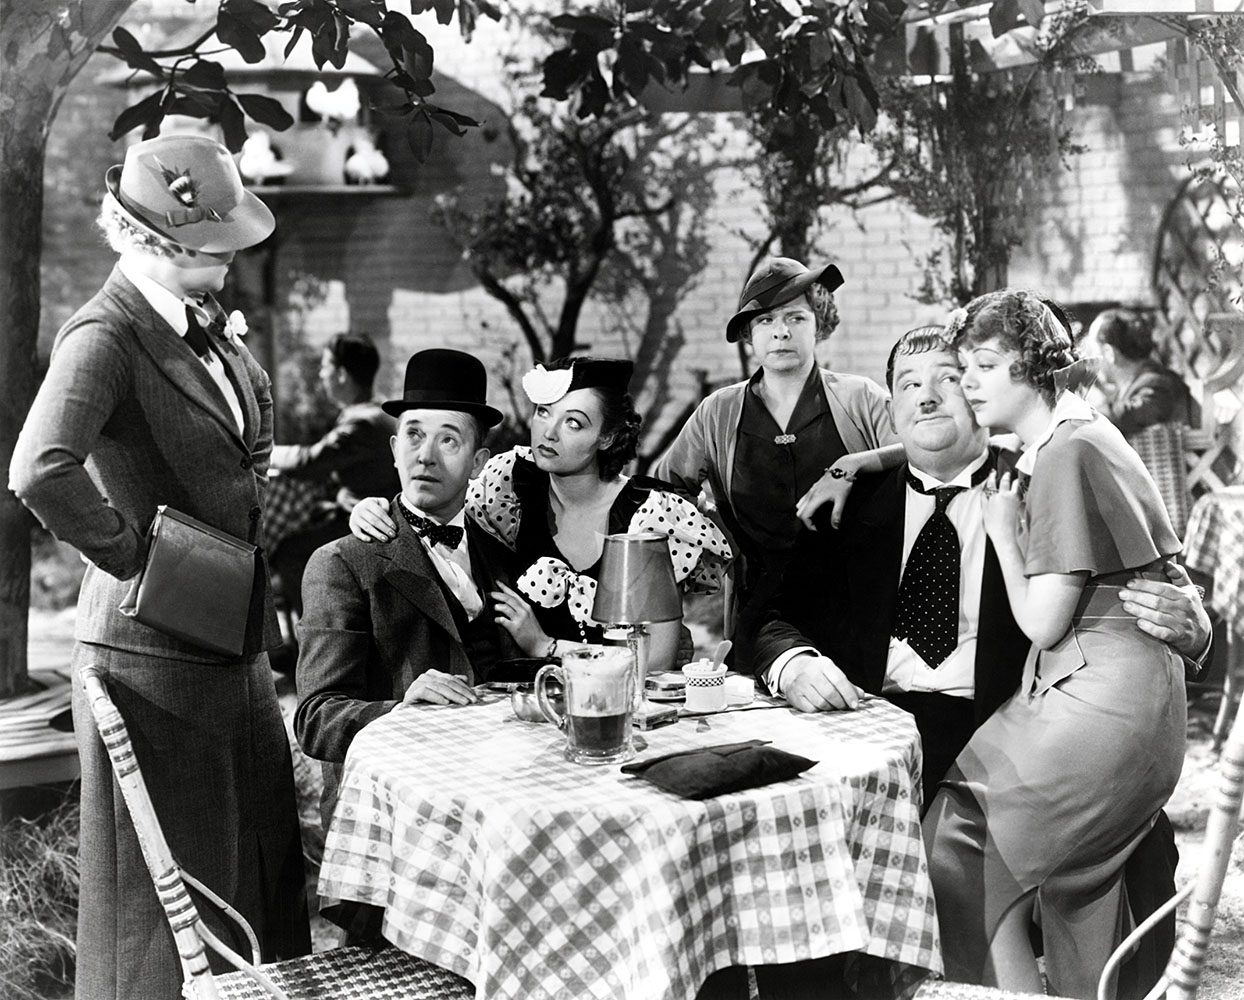 Betty Healy, Stan Laurel, Lona Andre, Daphne Pollard, Oliver Hardy and Iris Adrian - 1936